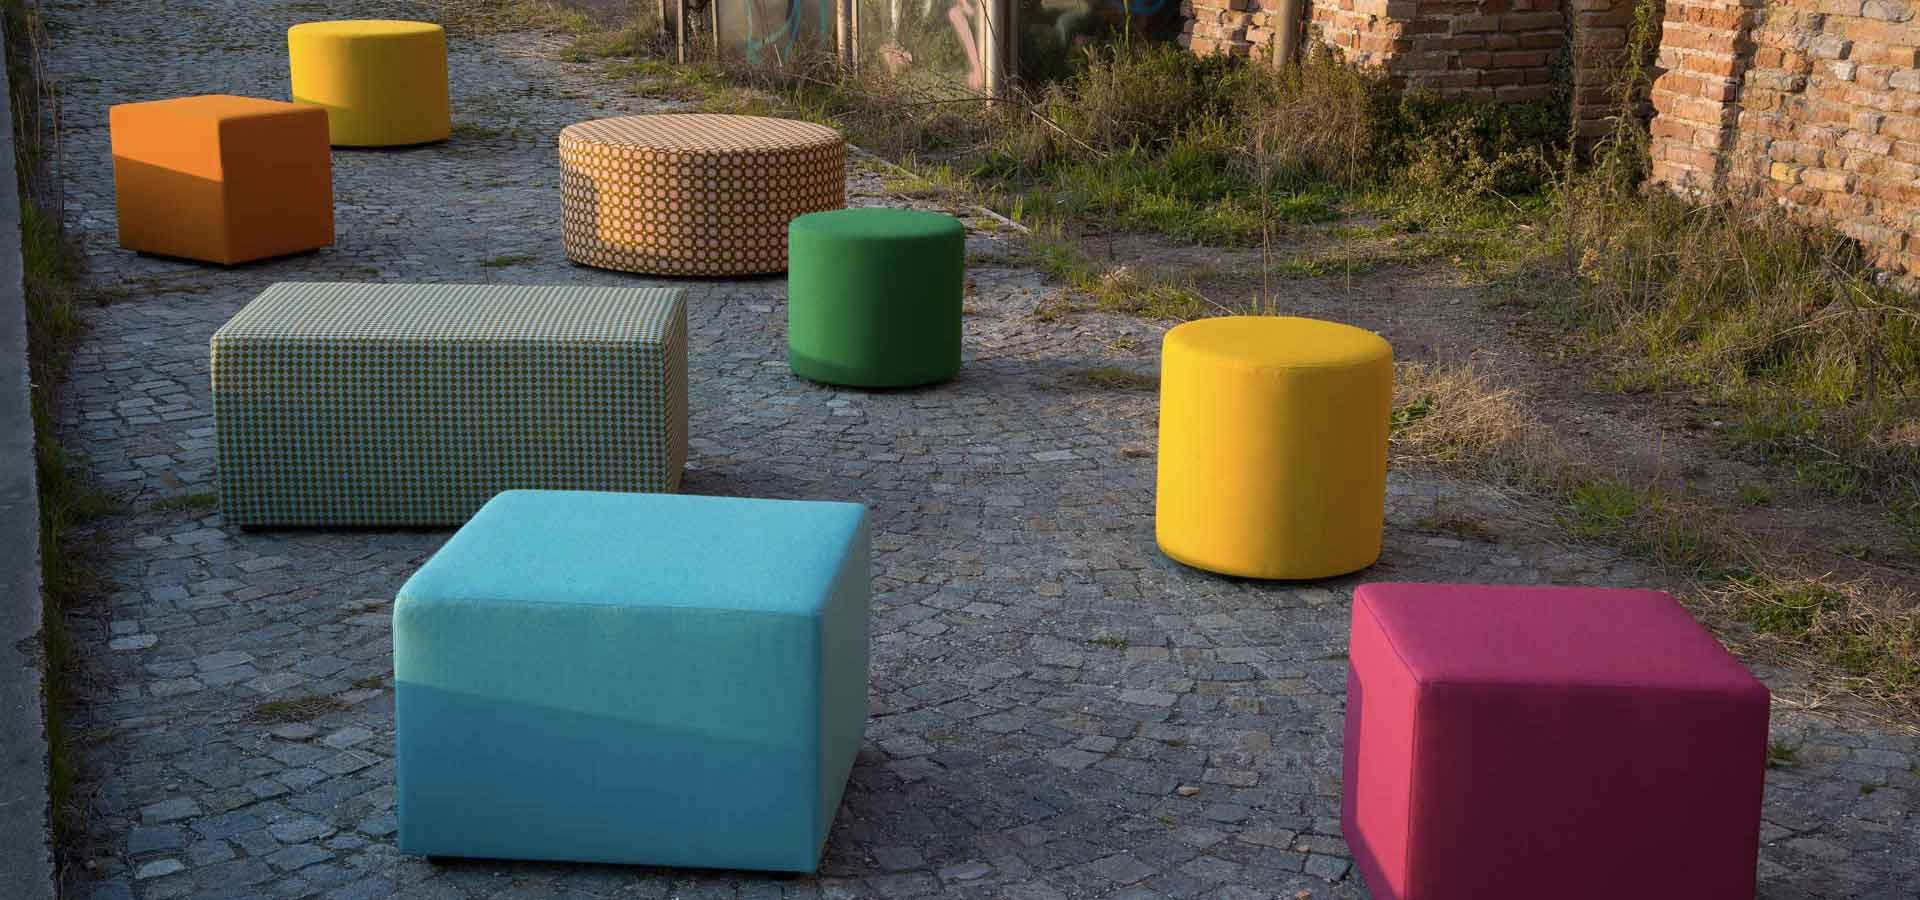 Contract_CollezioneDesignItalianoCollectionItalianDesign_POUF_8232